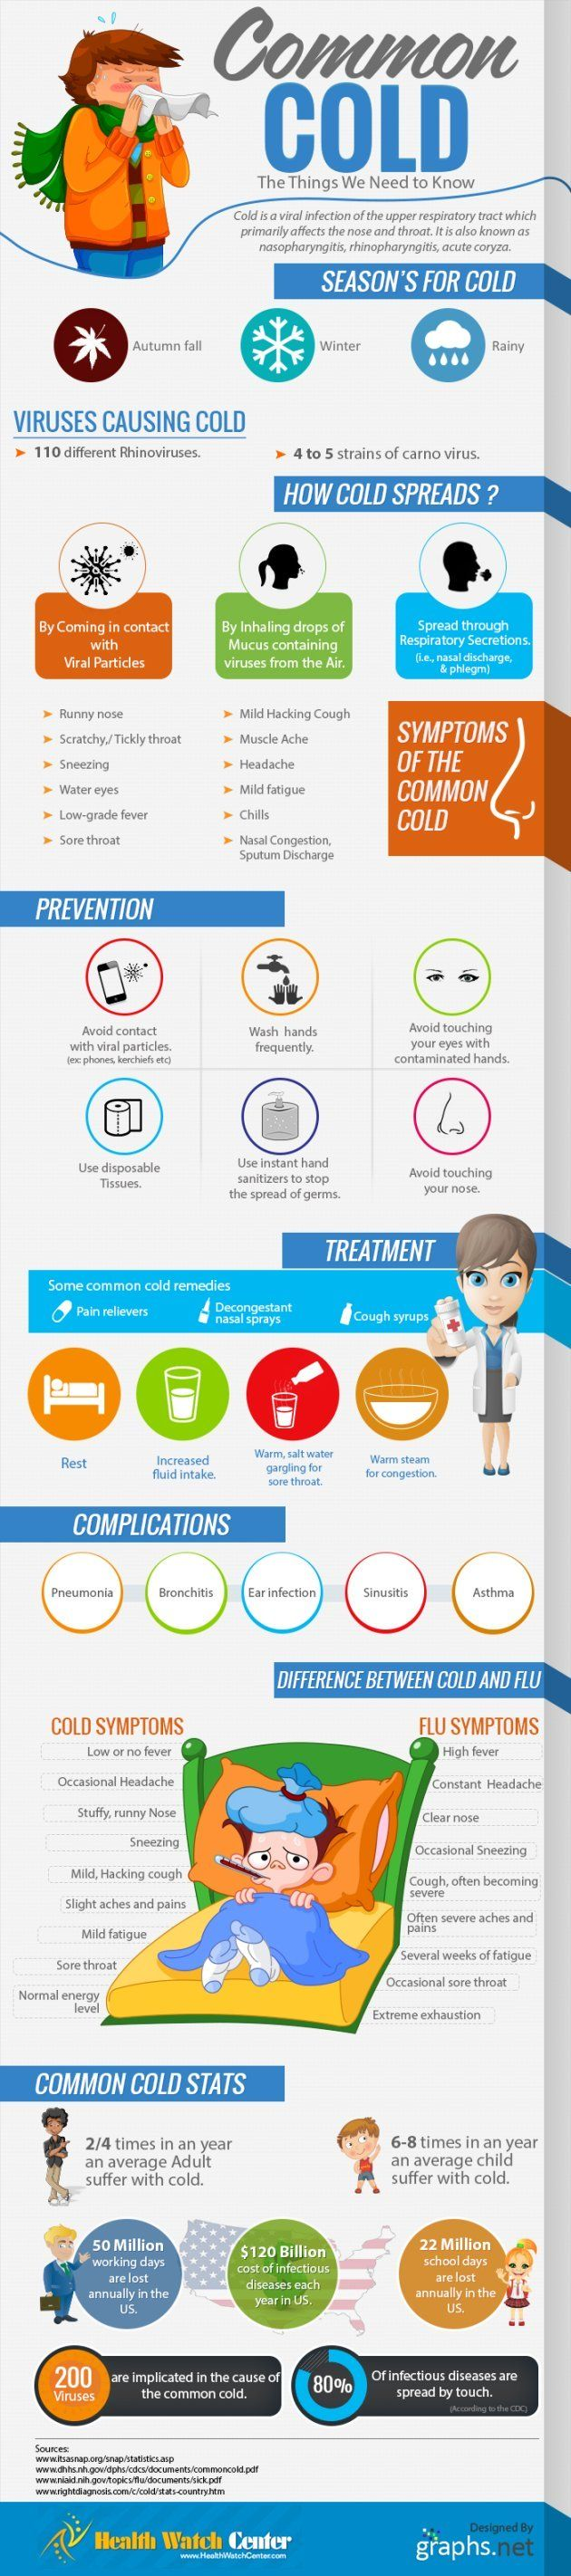 Common Cold Infographic